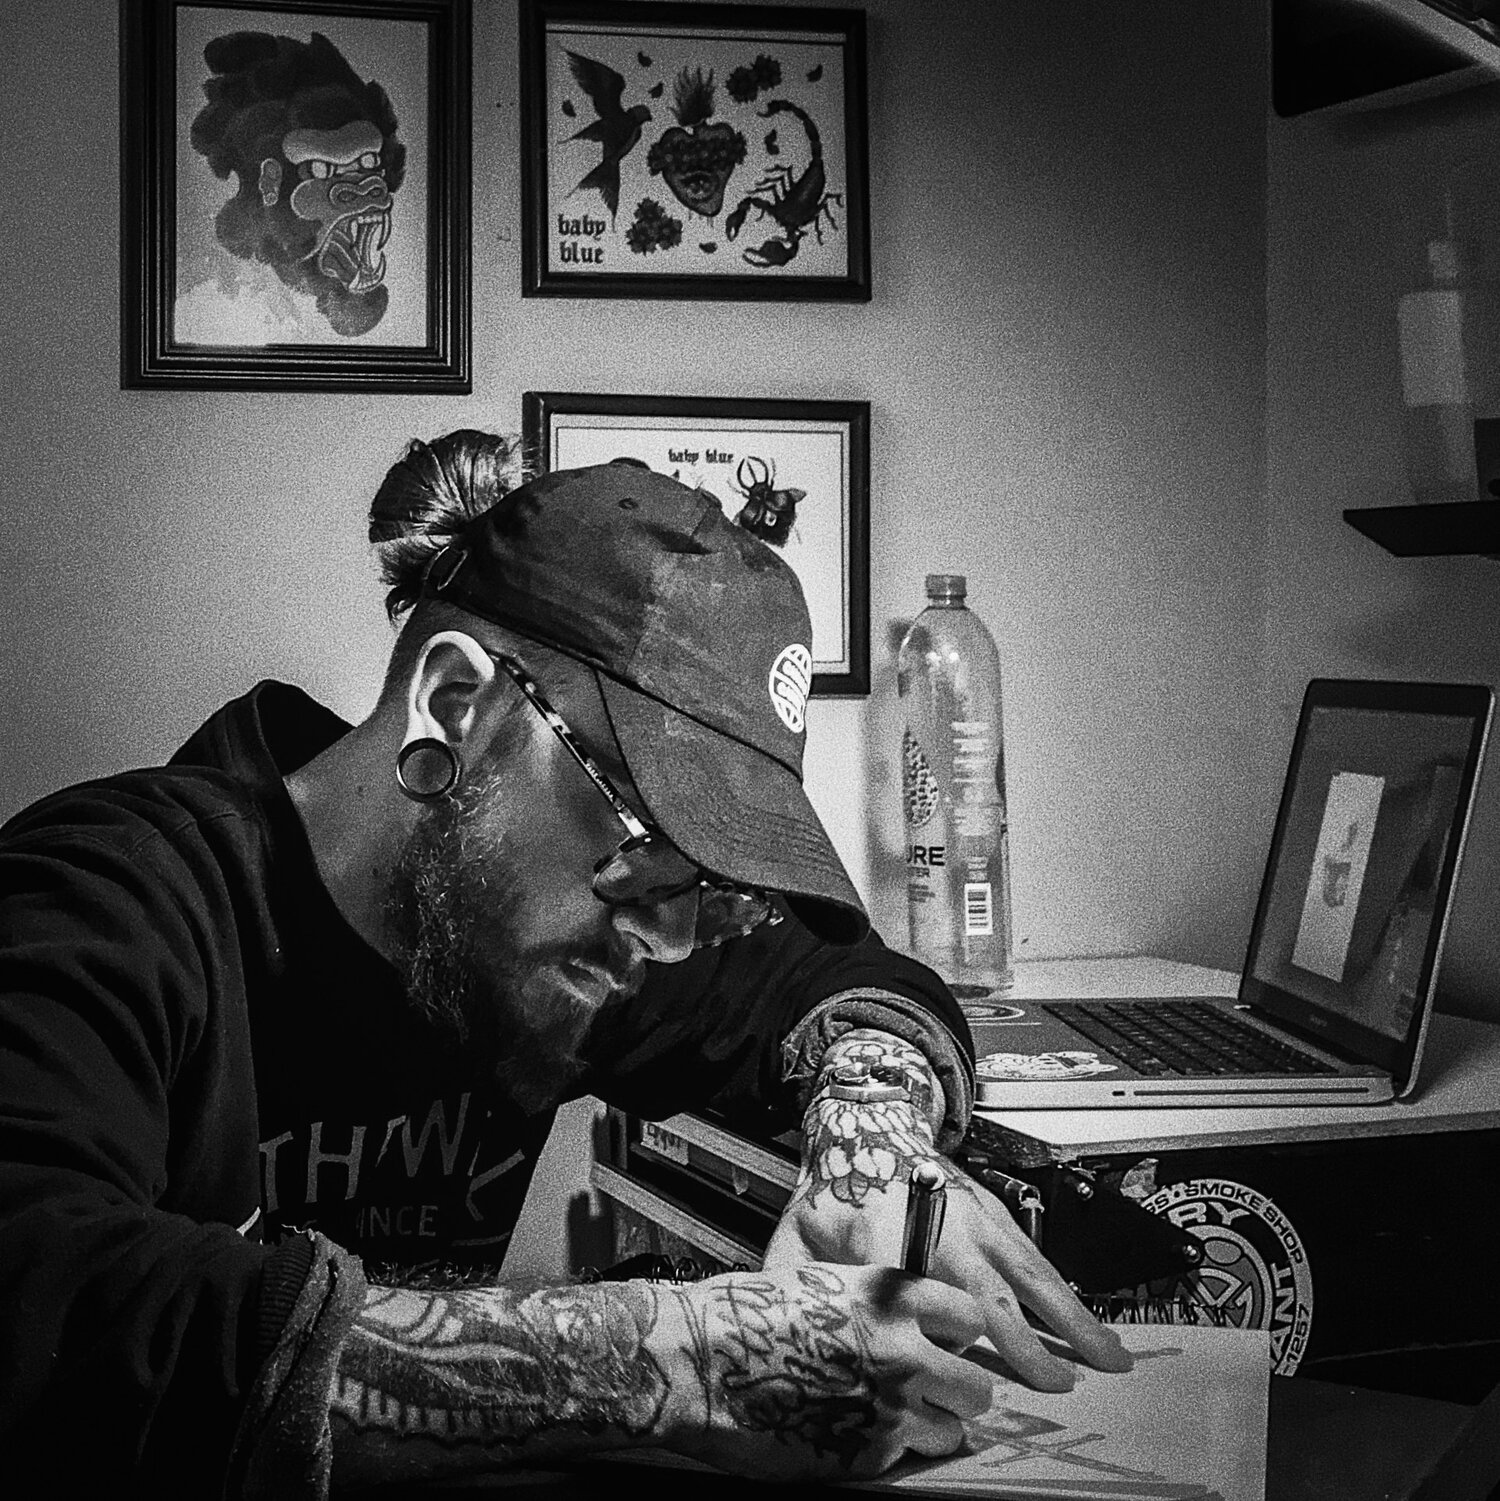 Francis O'Connell (@babyblue_ttt) - Former Mica Student who took the Fundamentals from Art School to becoming a Top Tier Tattoo Artist.